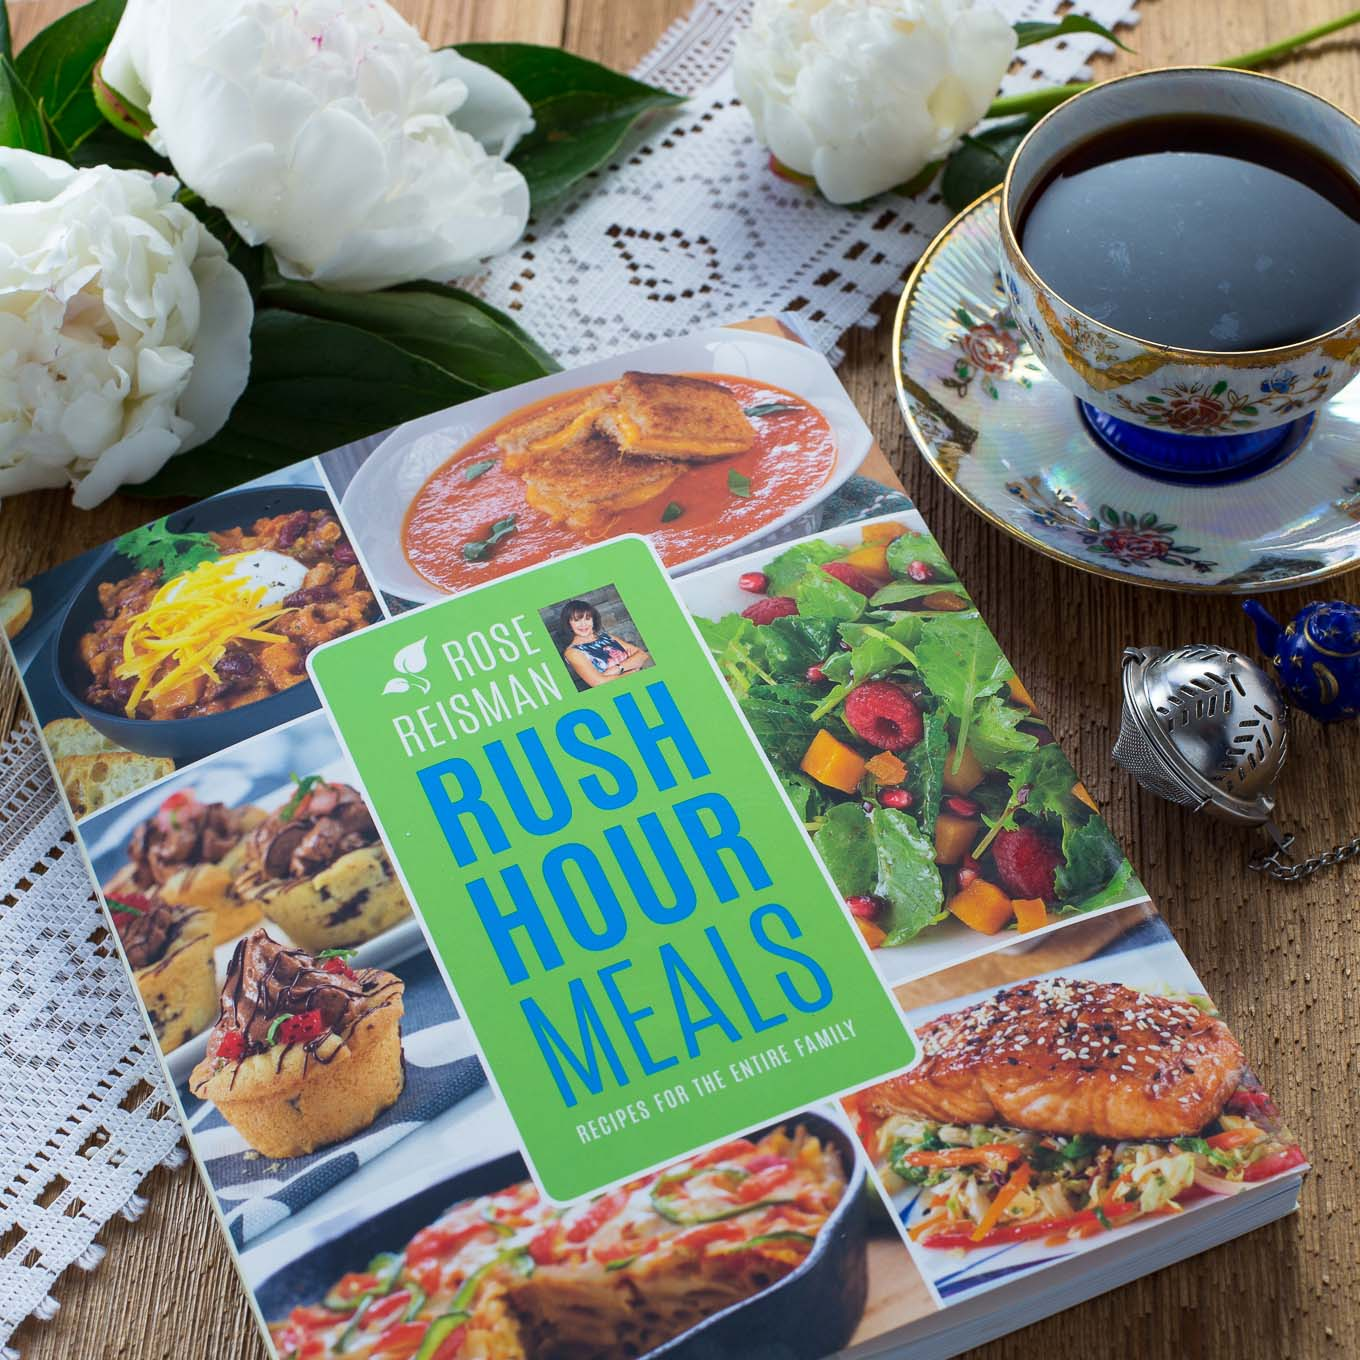 Rose Reisman cookbook Rush Hour Meals